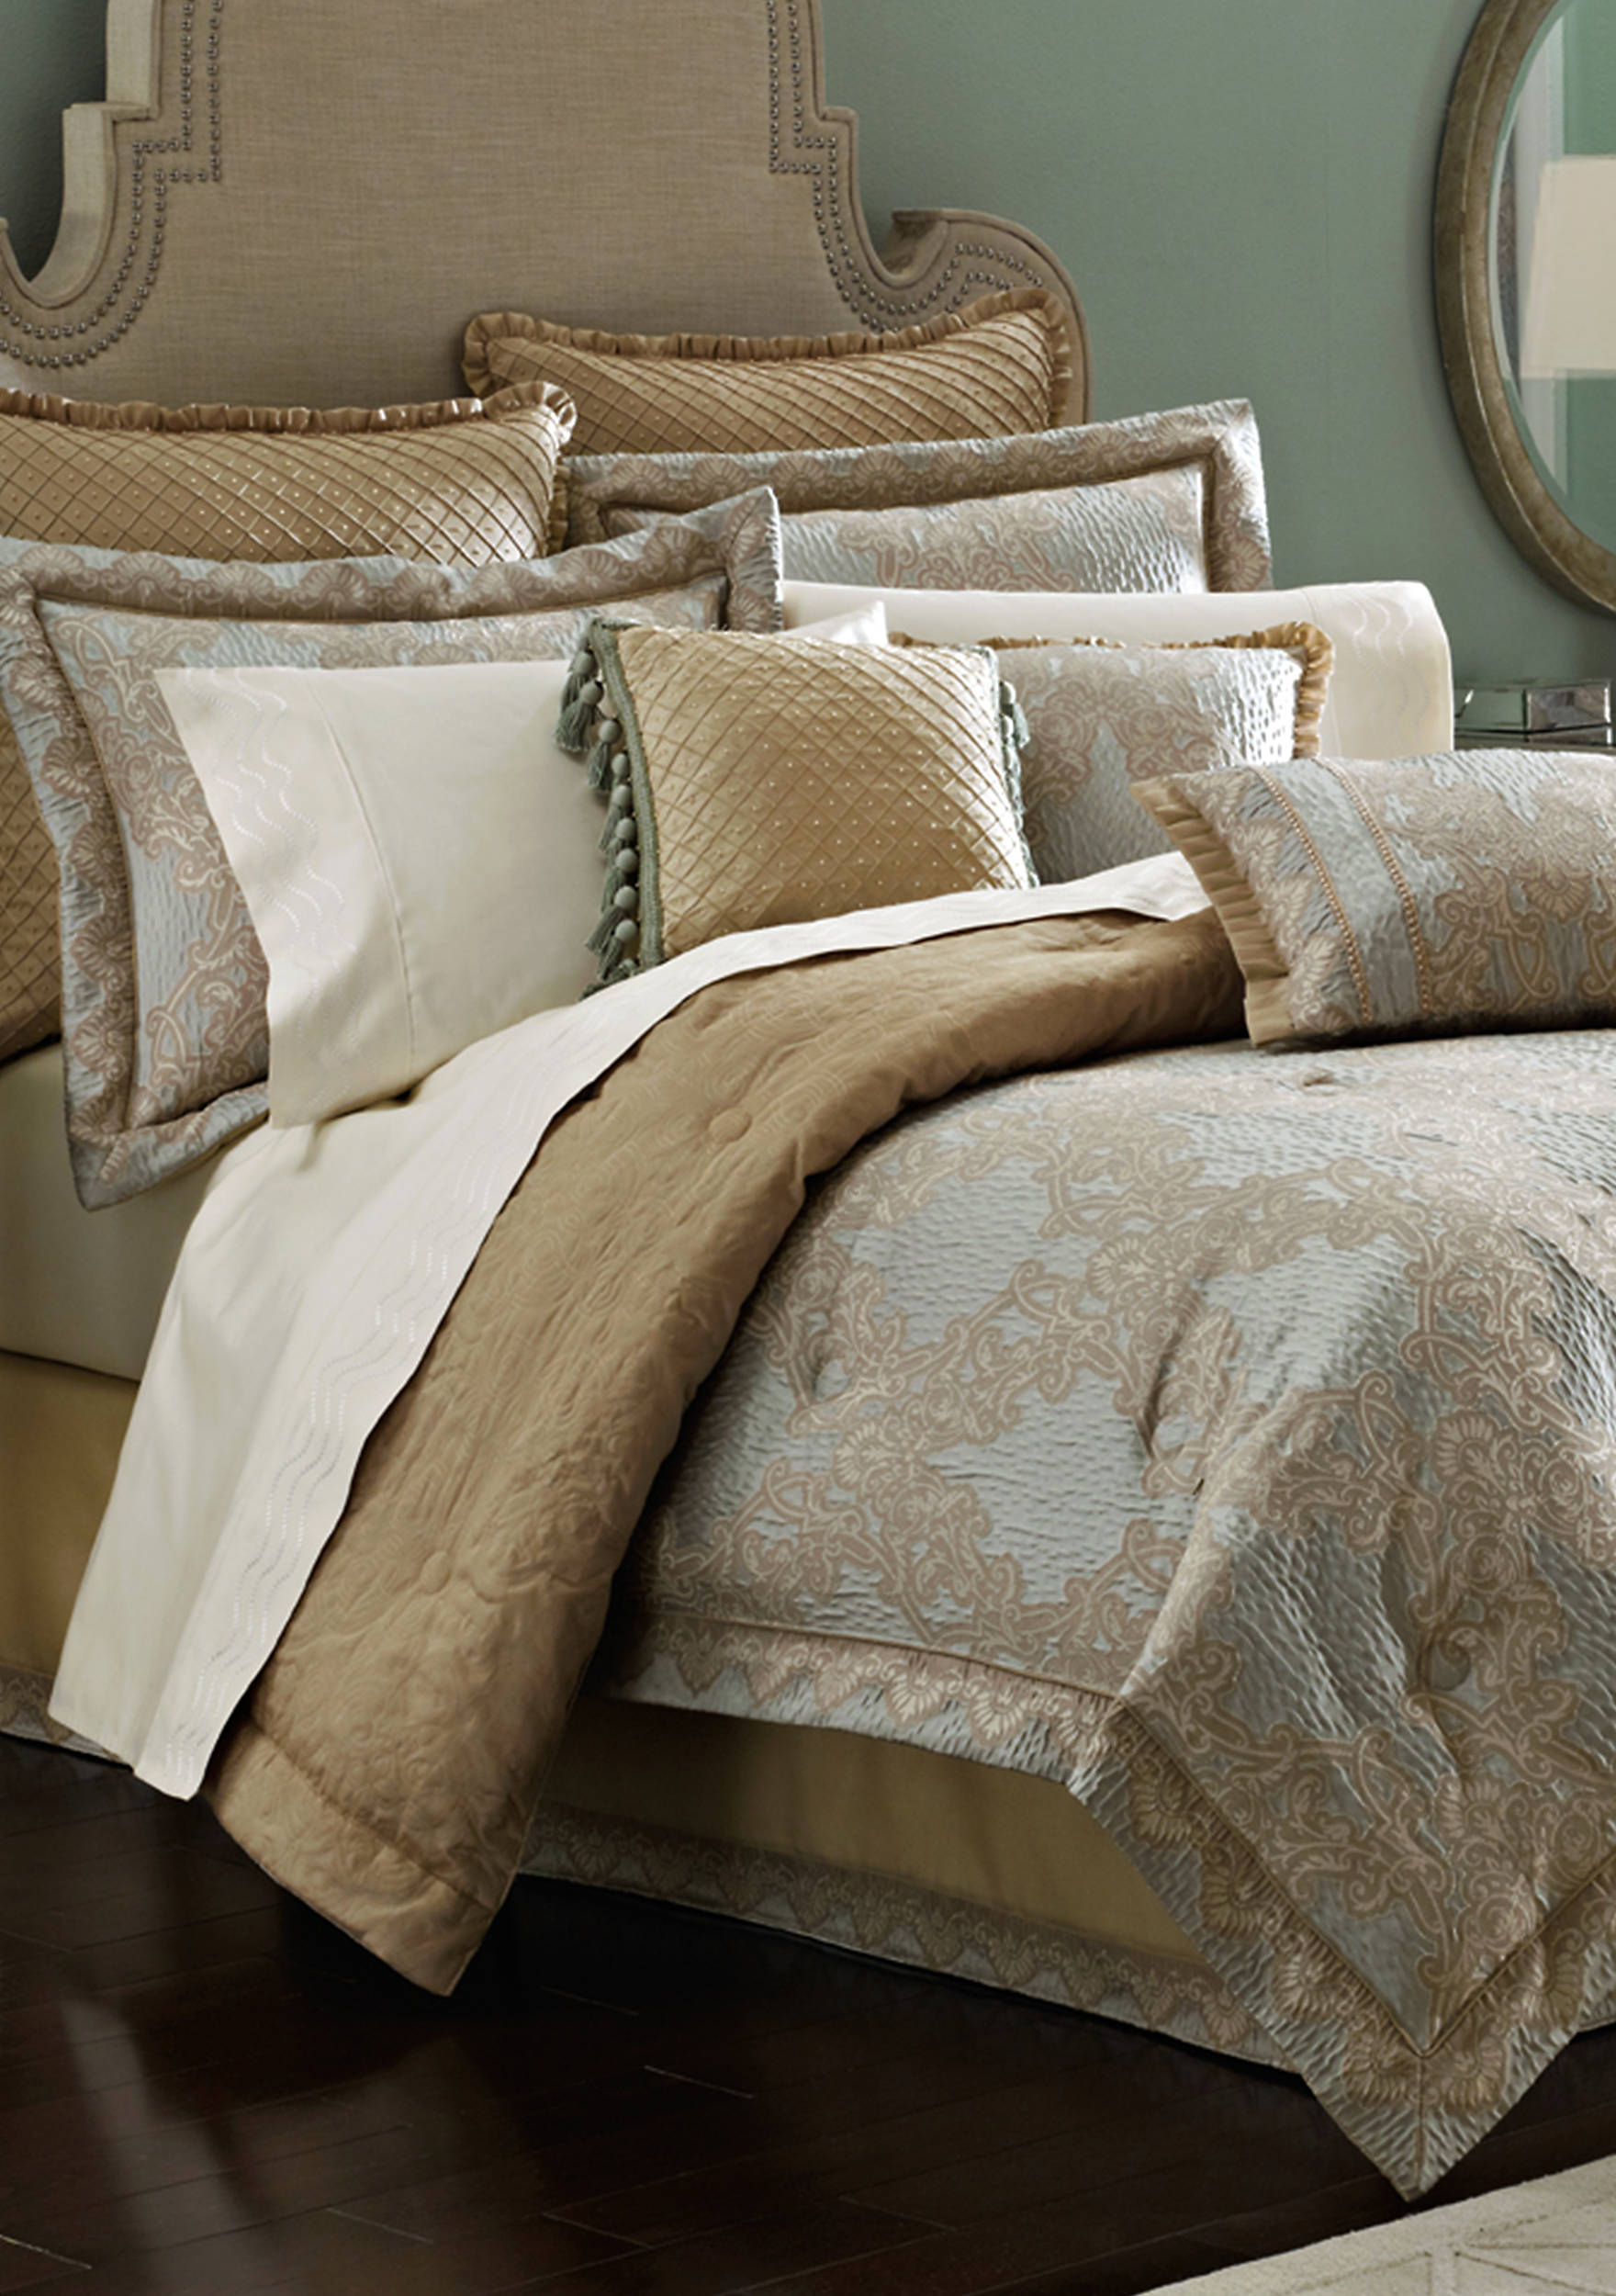 radiant radiance luxury touch class for bedding faux croscill in sets dw comforter shirred of congenial silk